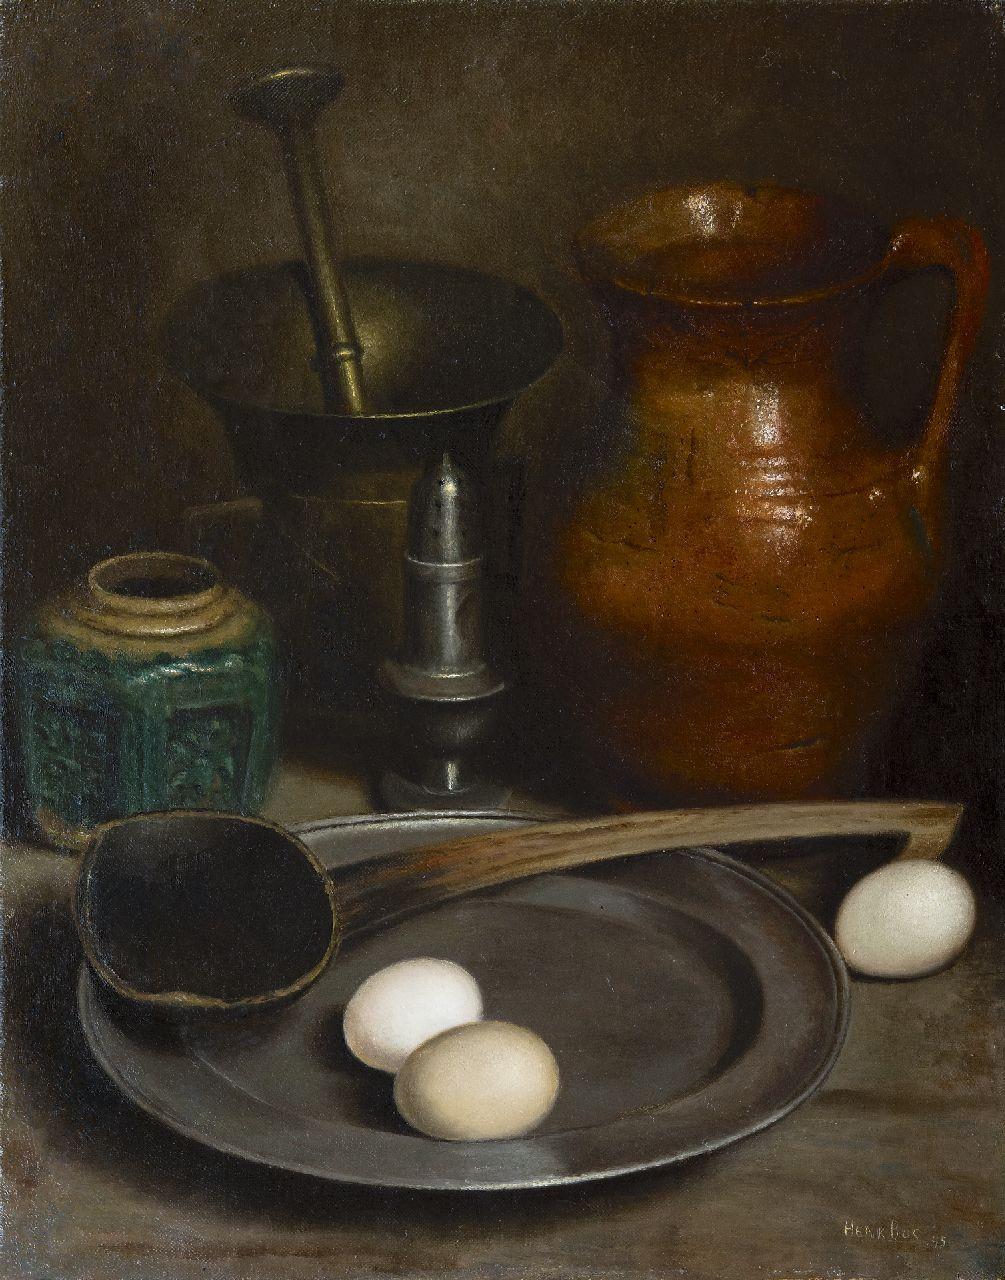 Henk Bos | A still life with pewter and earthenware, oil on canvas, 51.8 x 41.0 cm, signed l.r. and dated '45